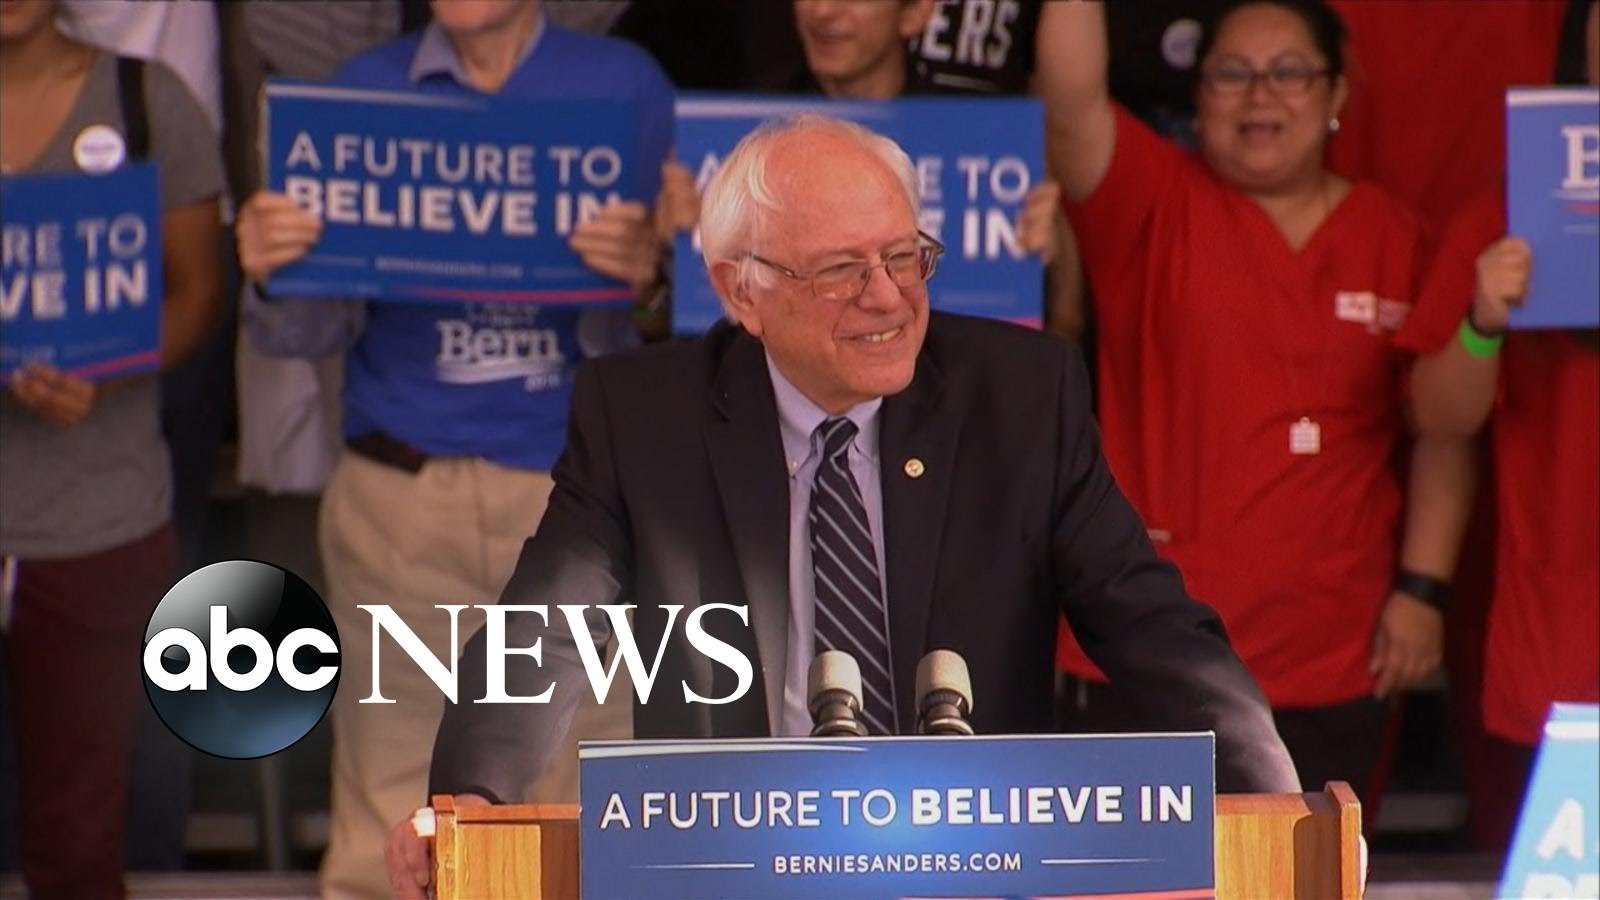 the speech of bernie sanders during his presidential campaign announcement Record numbers of graduation applicants in wake of bernie sanders announcement one year and made a campaign stop on campus during his 2016 presidential bid.